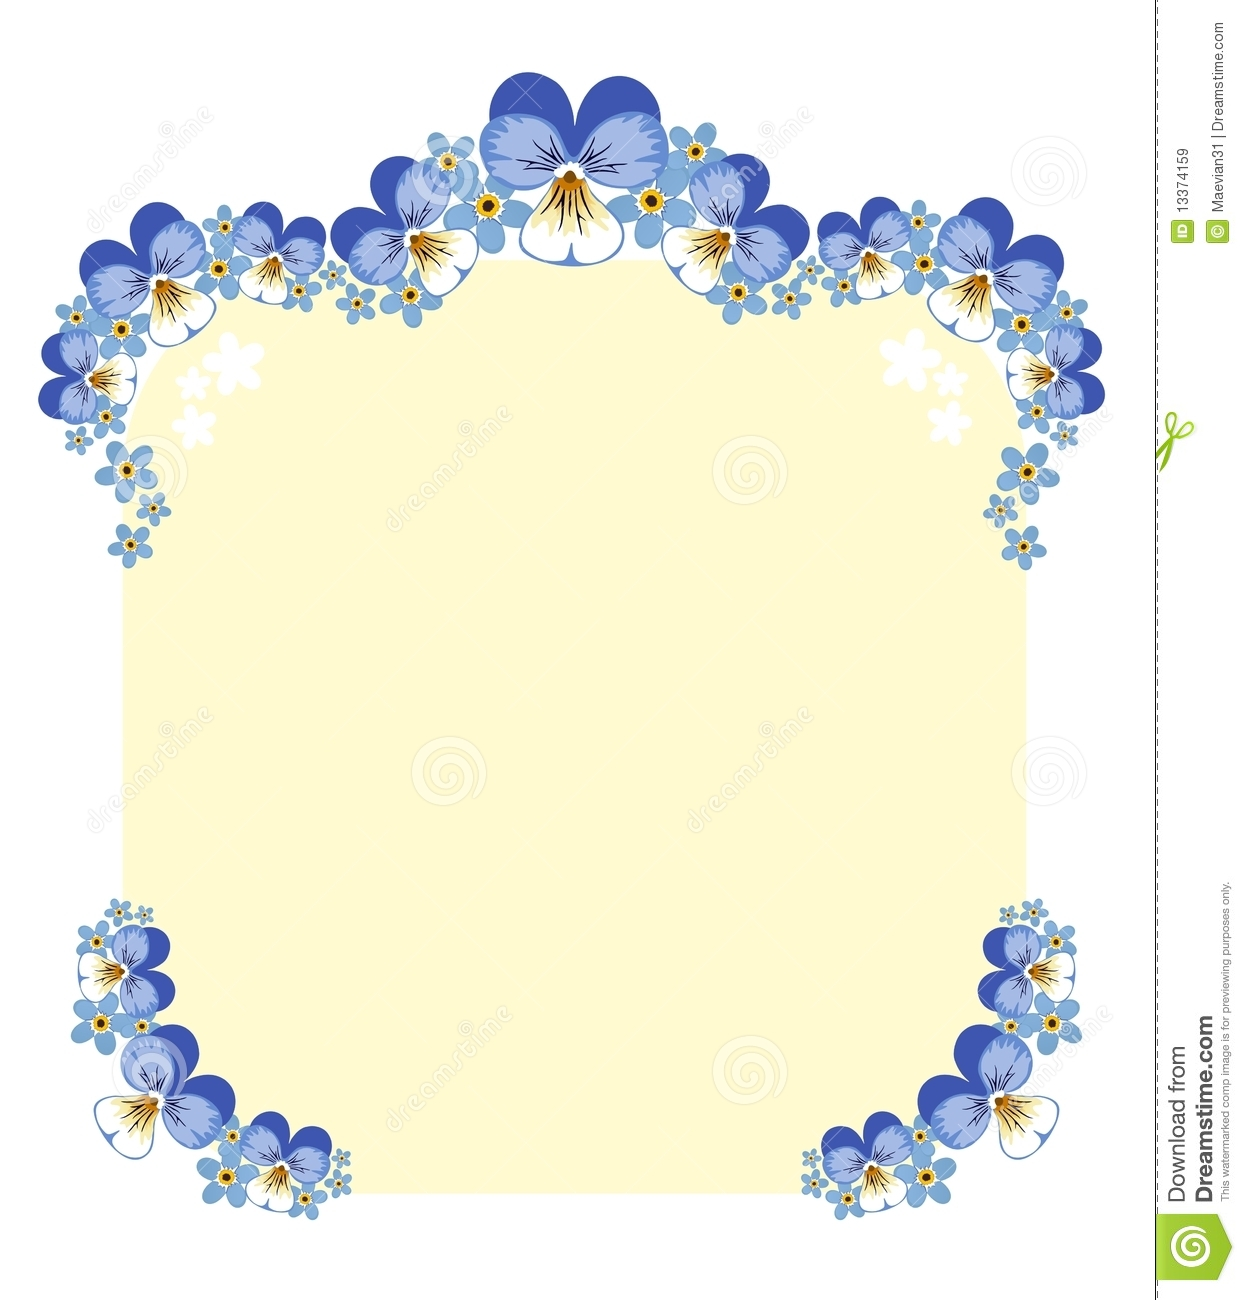 Floral Frame - Pansies And Forget-me-nots Royalty Free